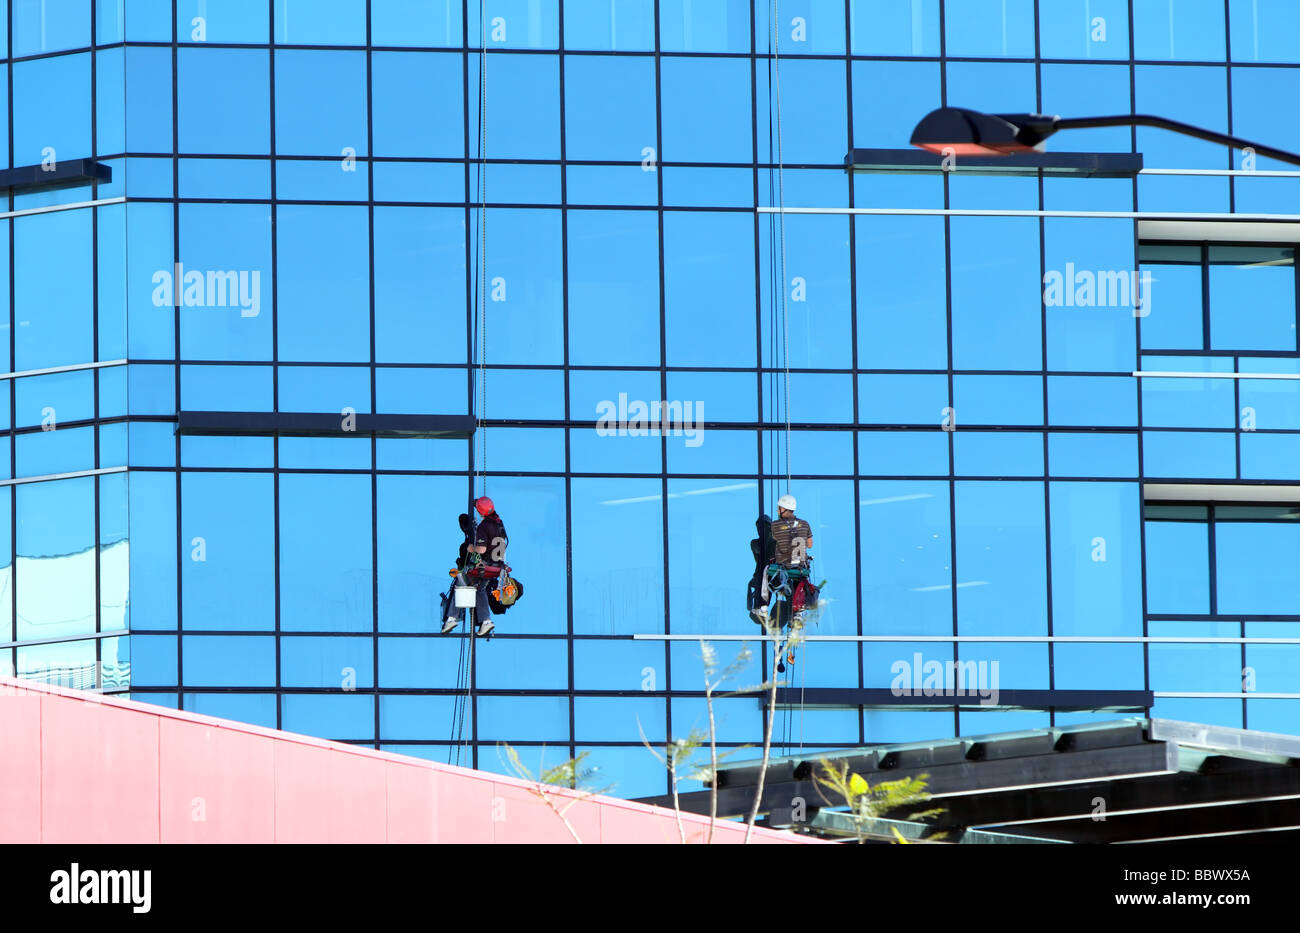 Two abseiling window cleaners washing windows on a skyscraper hanging by ropes with buckets attached Stock Photo